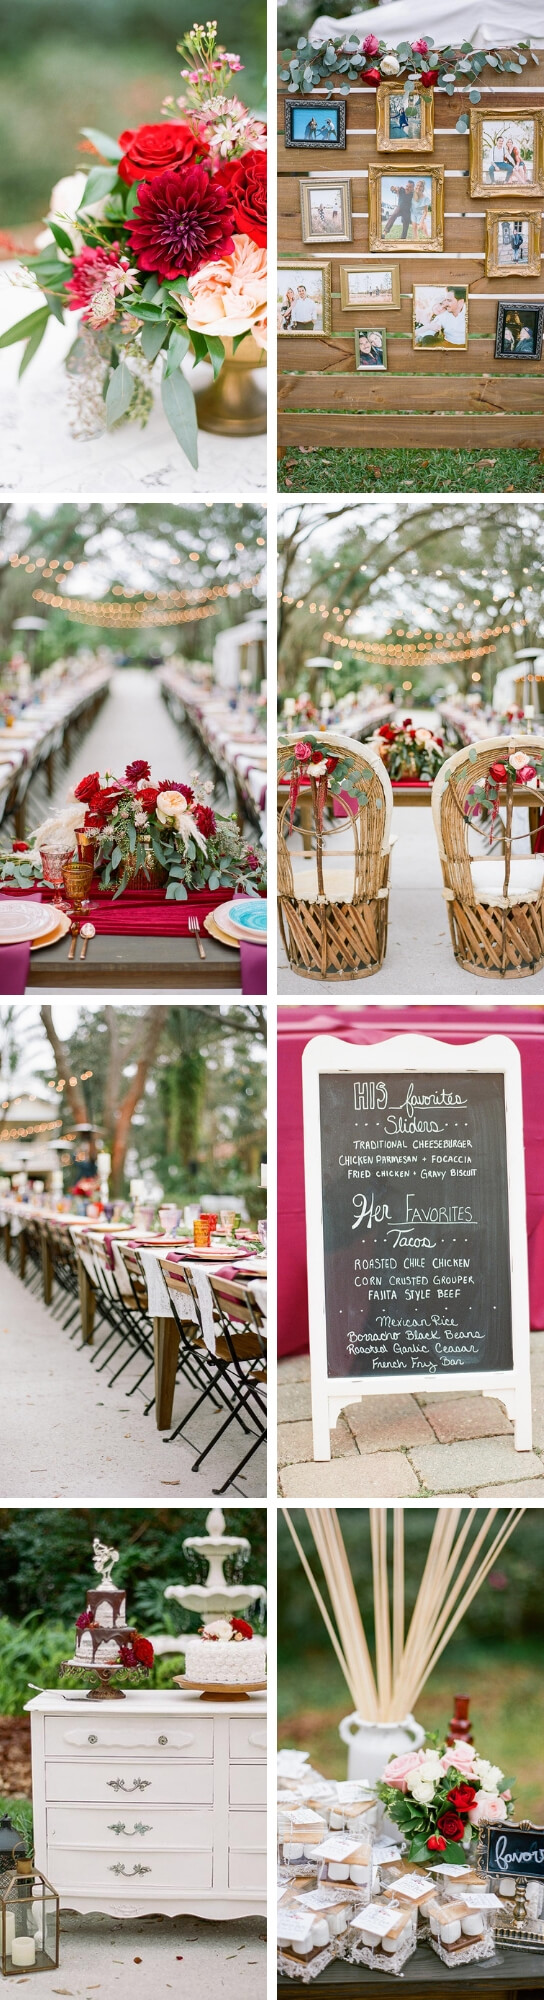 Colorful Eclectic and Vintage Wedding | Creative & Rustic Backyard Wedding Ideas For Summer & Fall